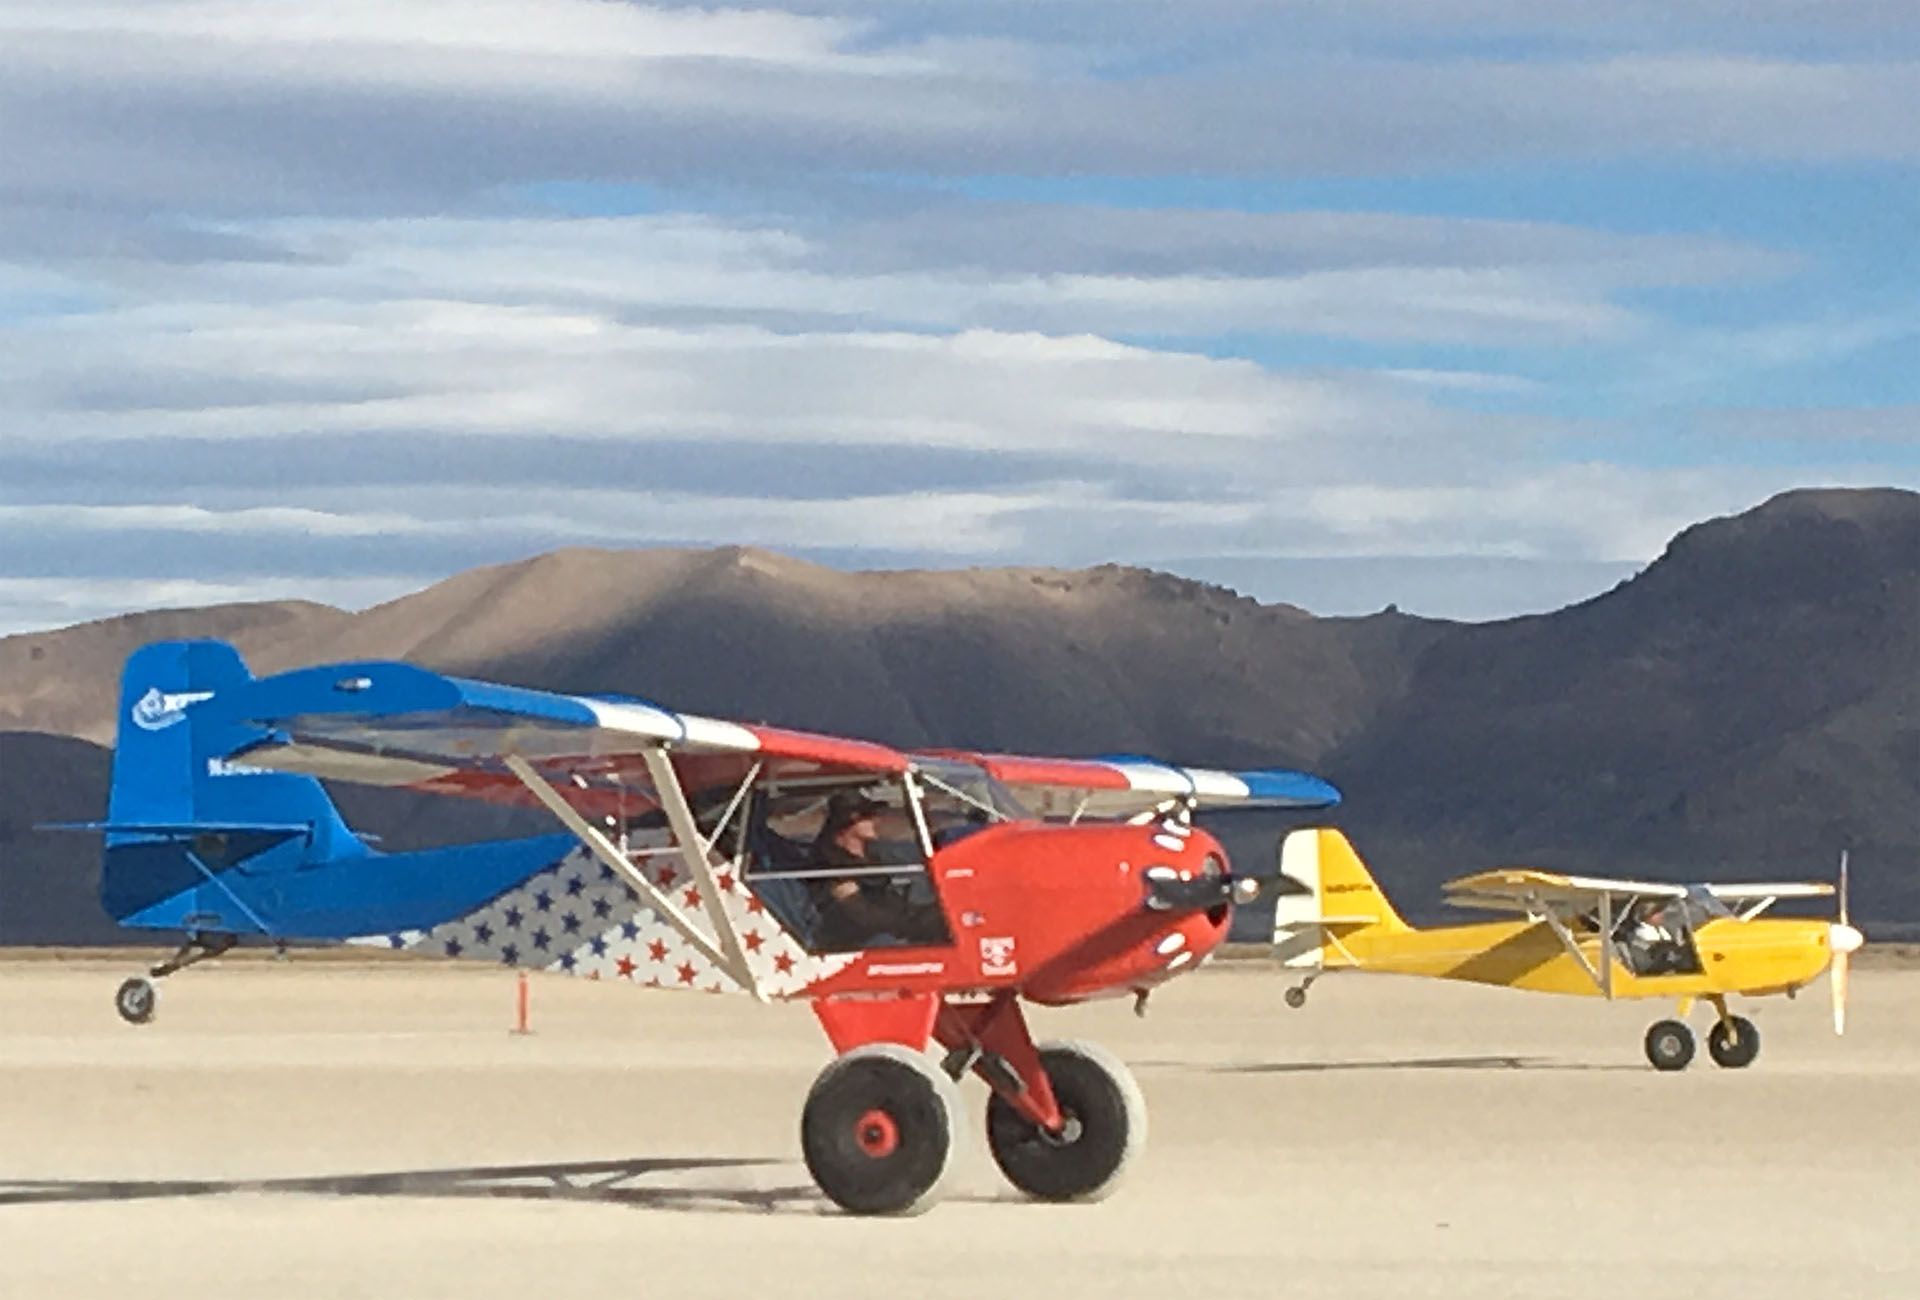 STOL Drag at the High Sierra Fly-In